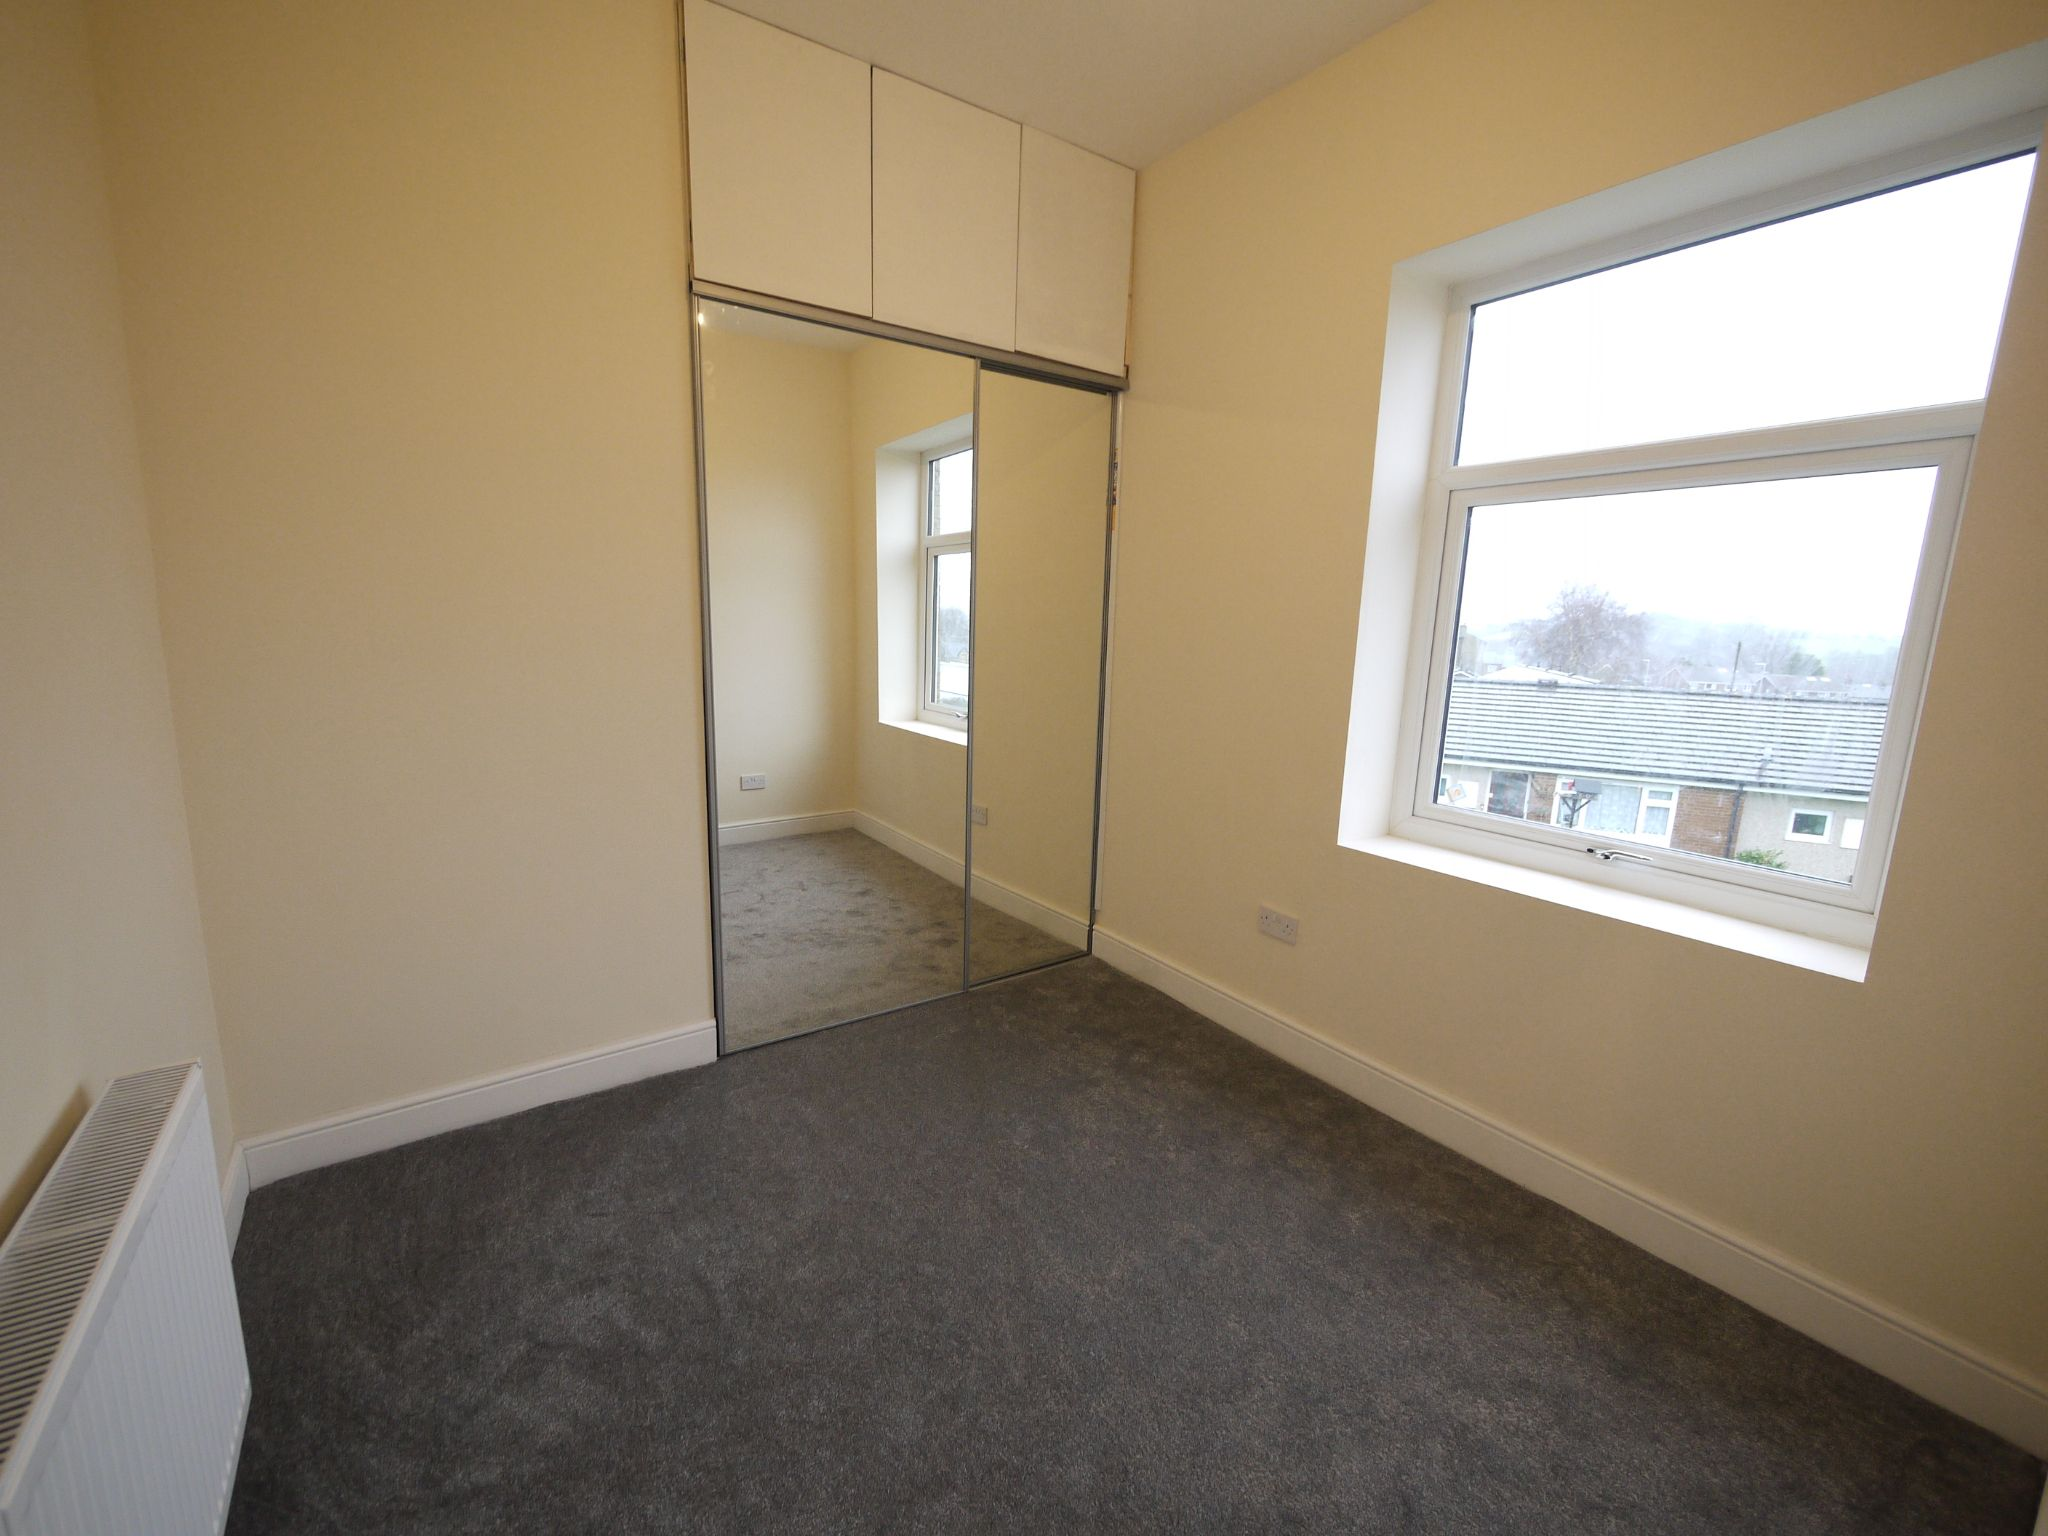 2 bedroom mid terraced house For Sale in Brighouse - Bedroom 1.